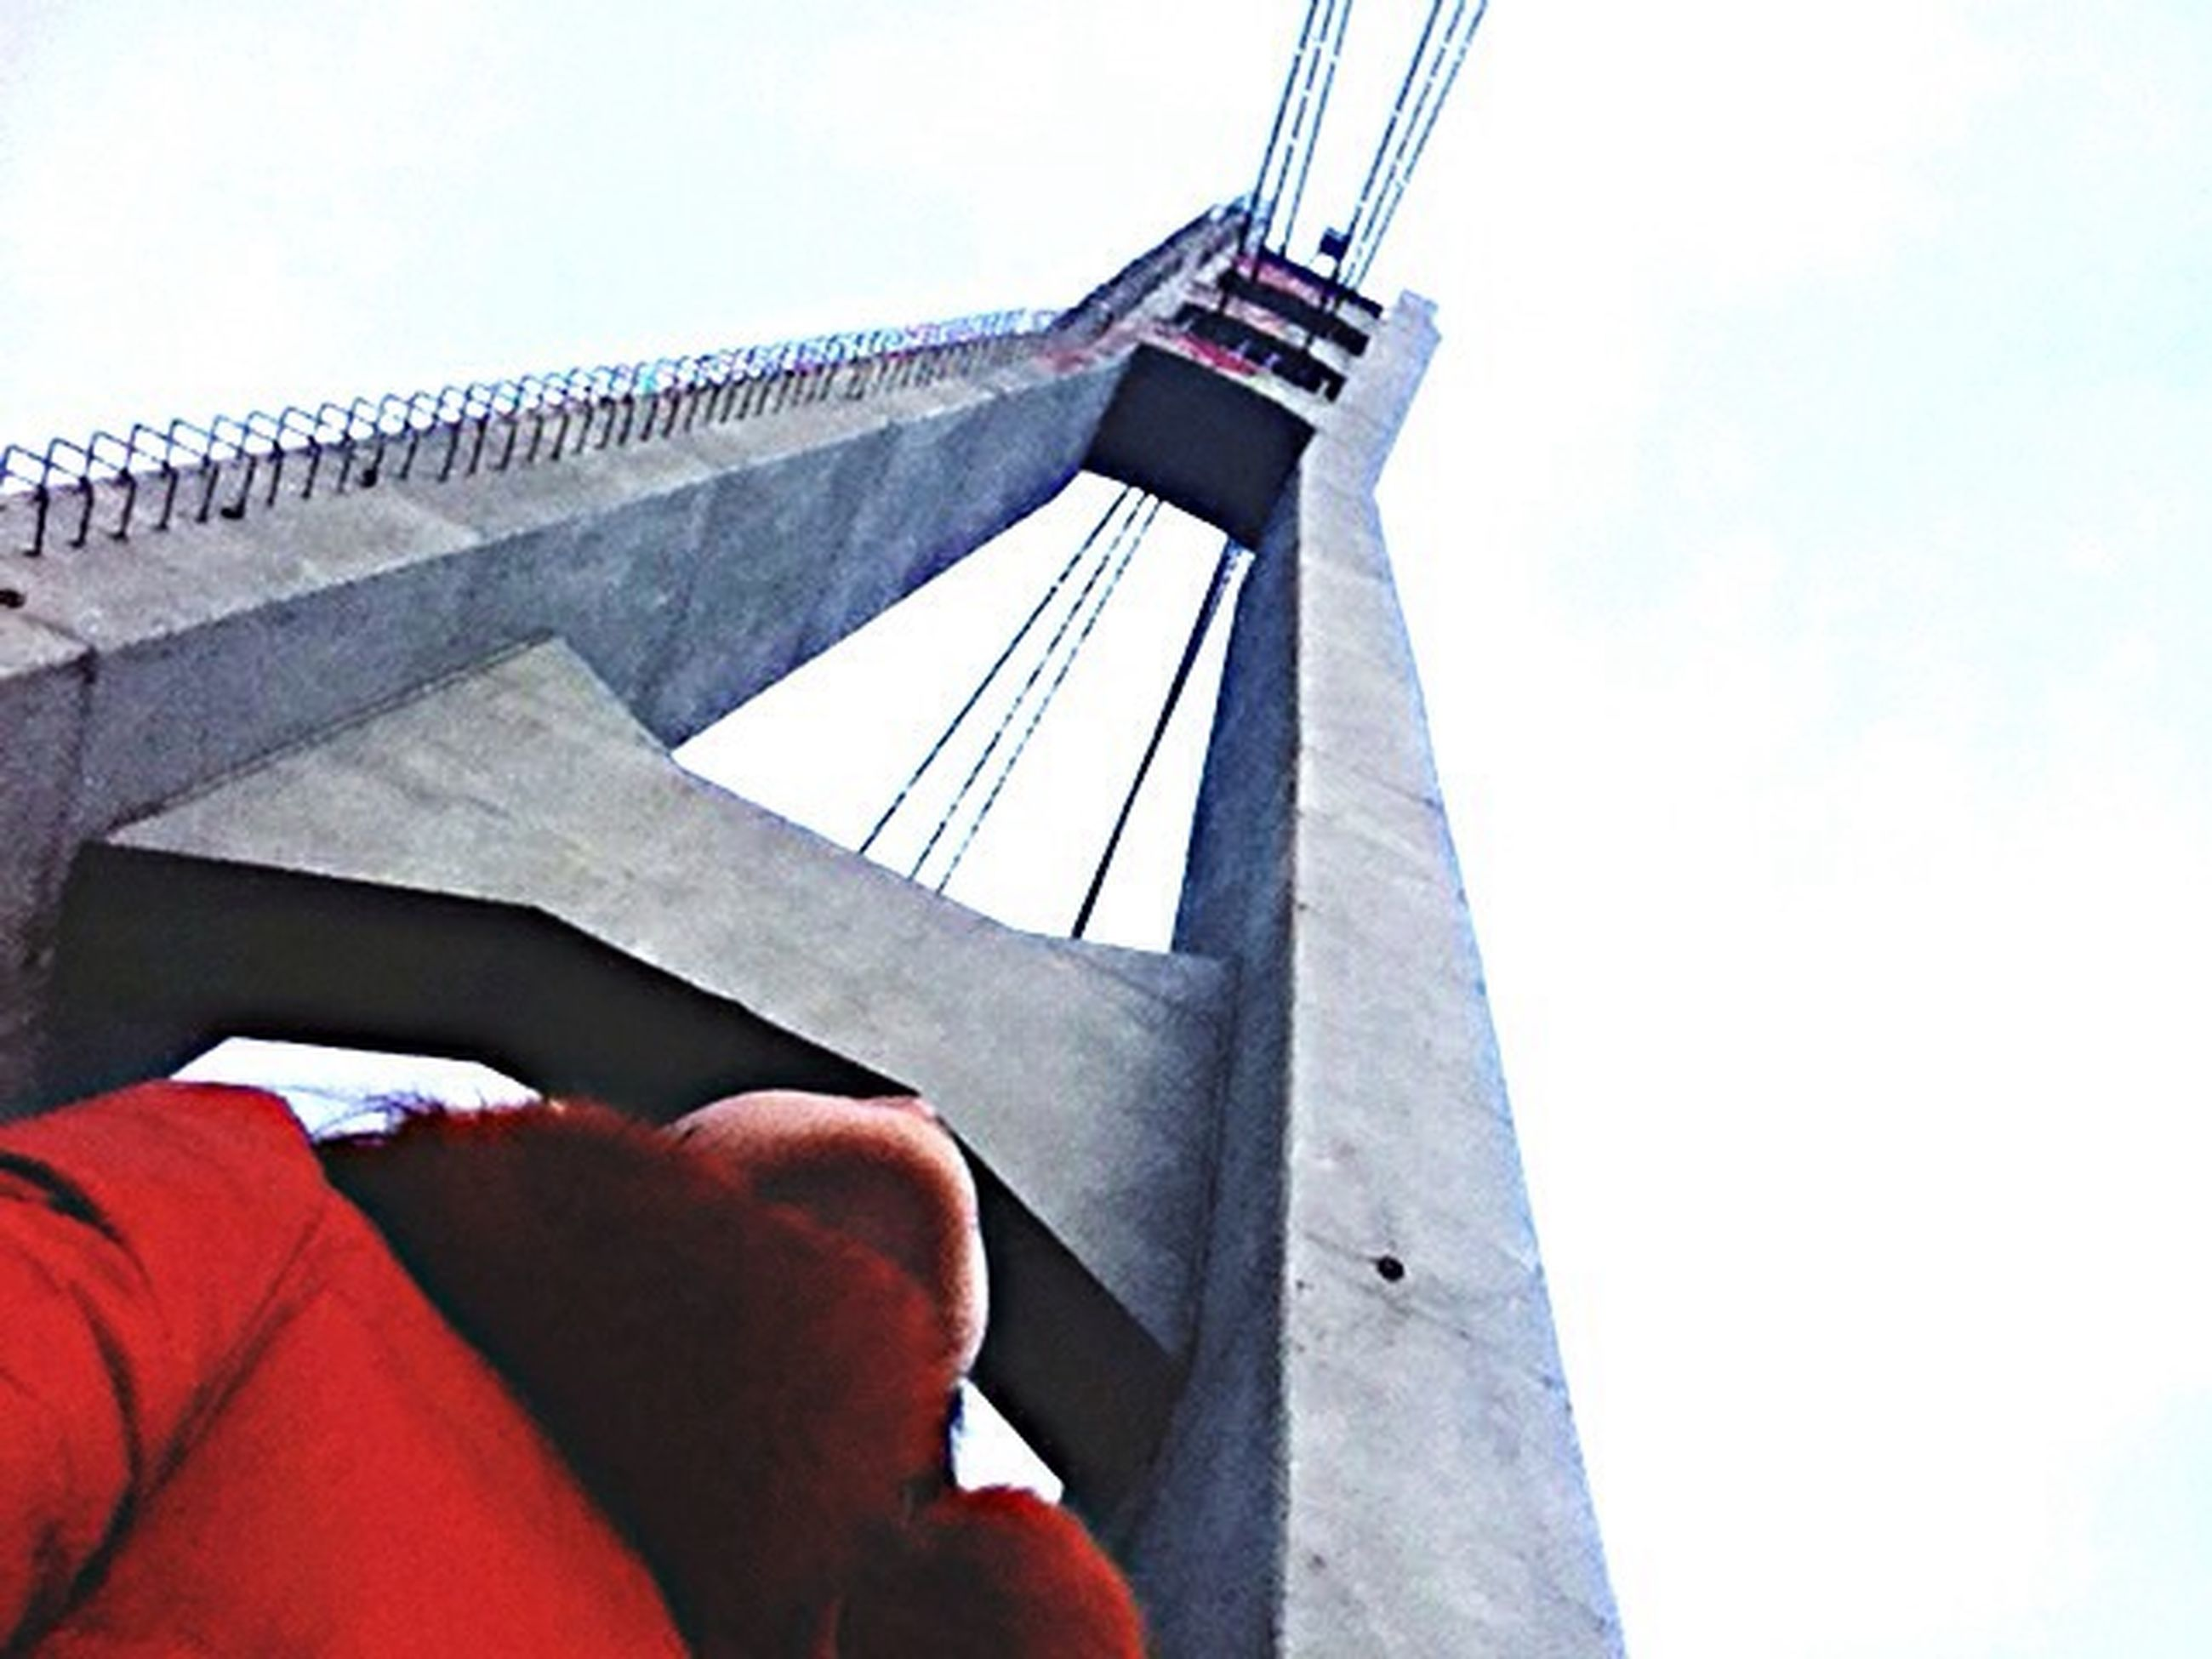 transportation, low angle view, part of, nautical vessel, sky, built structure, cropped, mode of transport, boat, travel, architecture, connection, engineering, clear sky, bridge - man made structure, day, men, outdoors